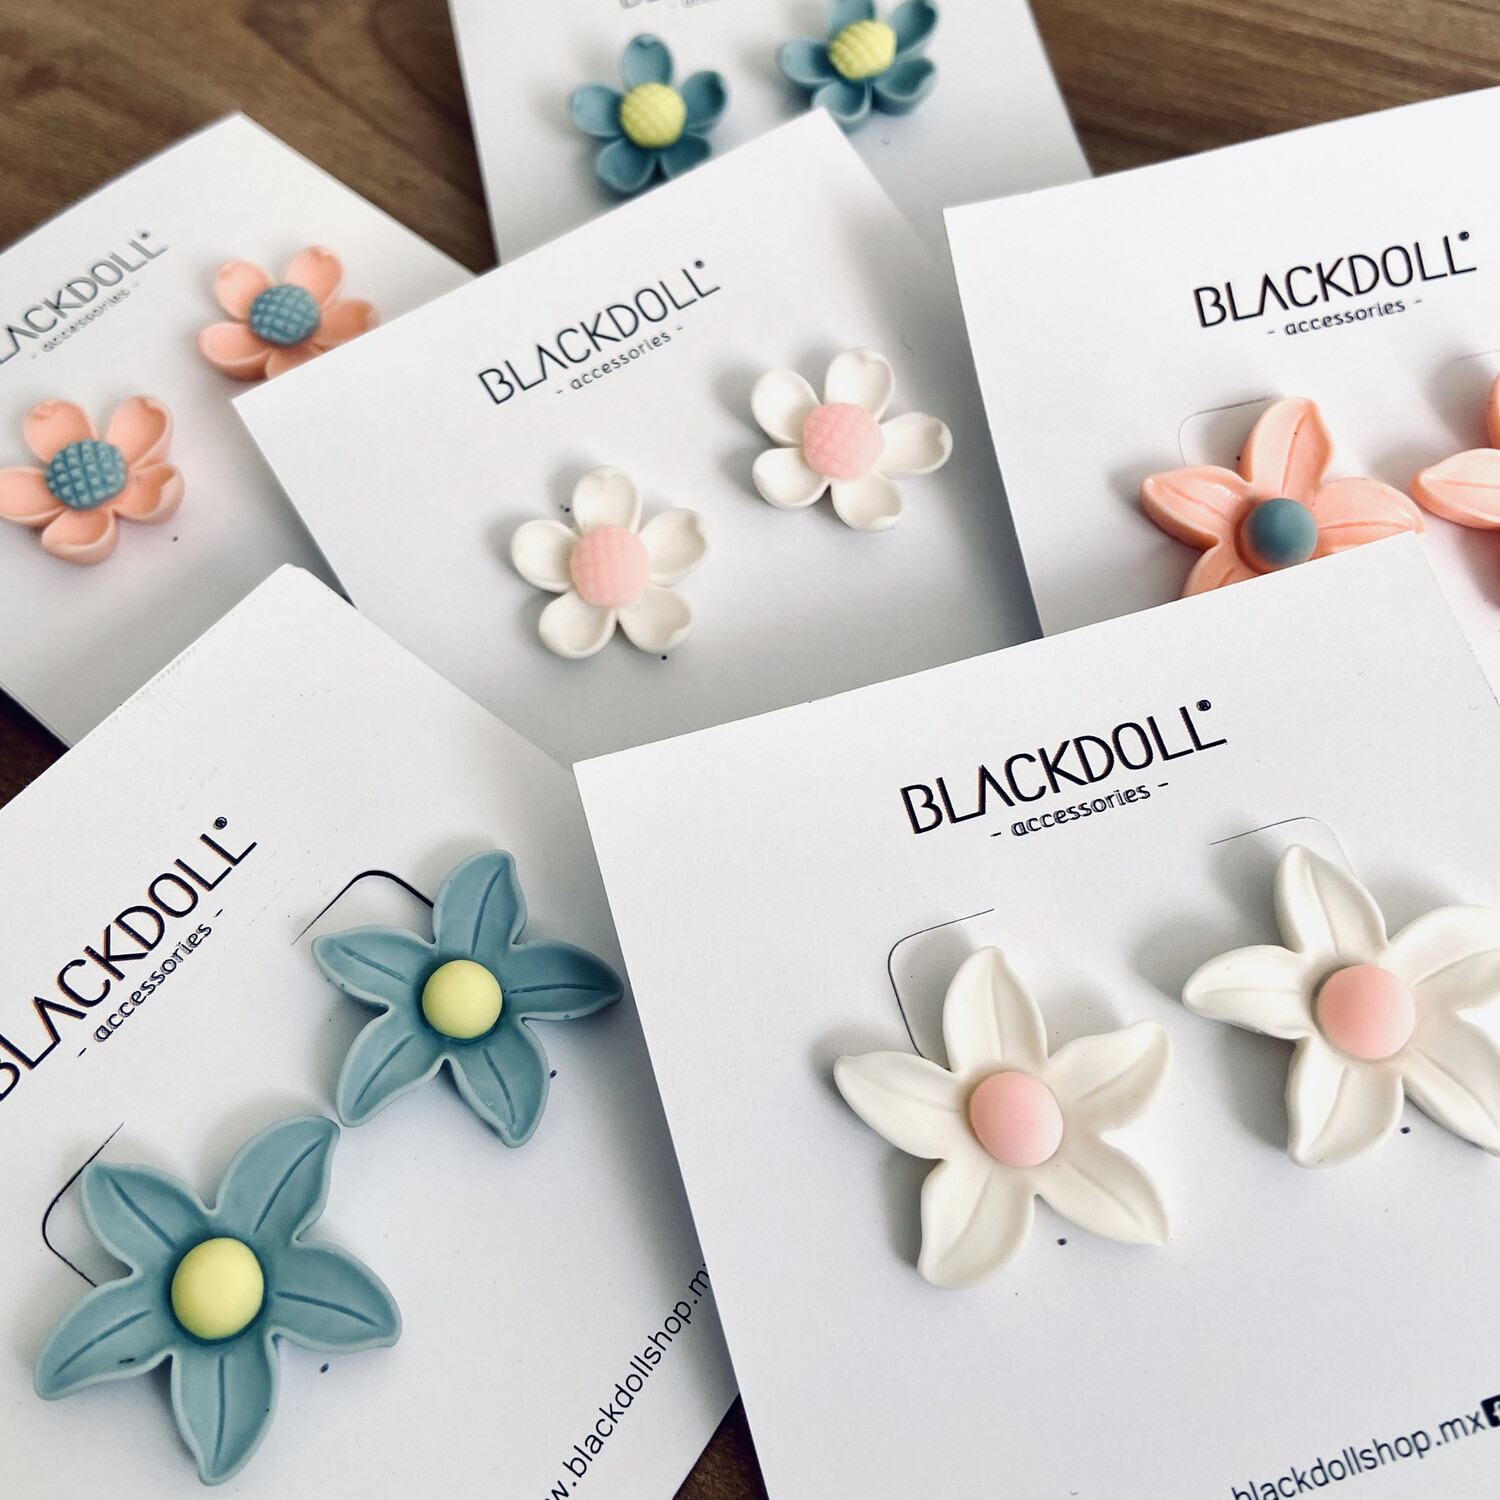 Aretes Flores Pastel - BLACKDOLL ACCESSORIES